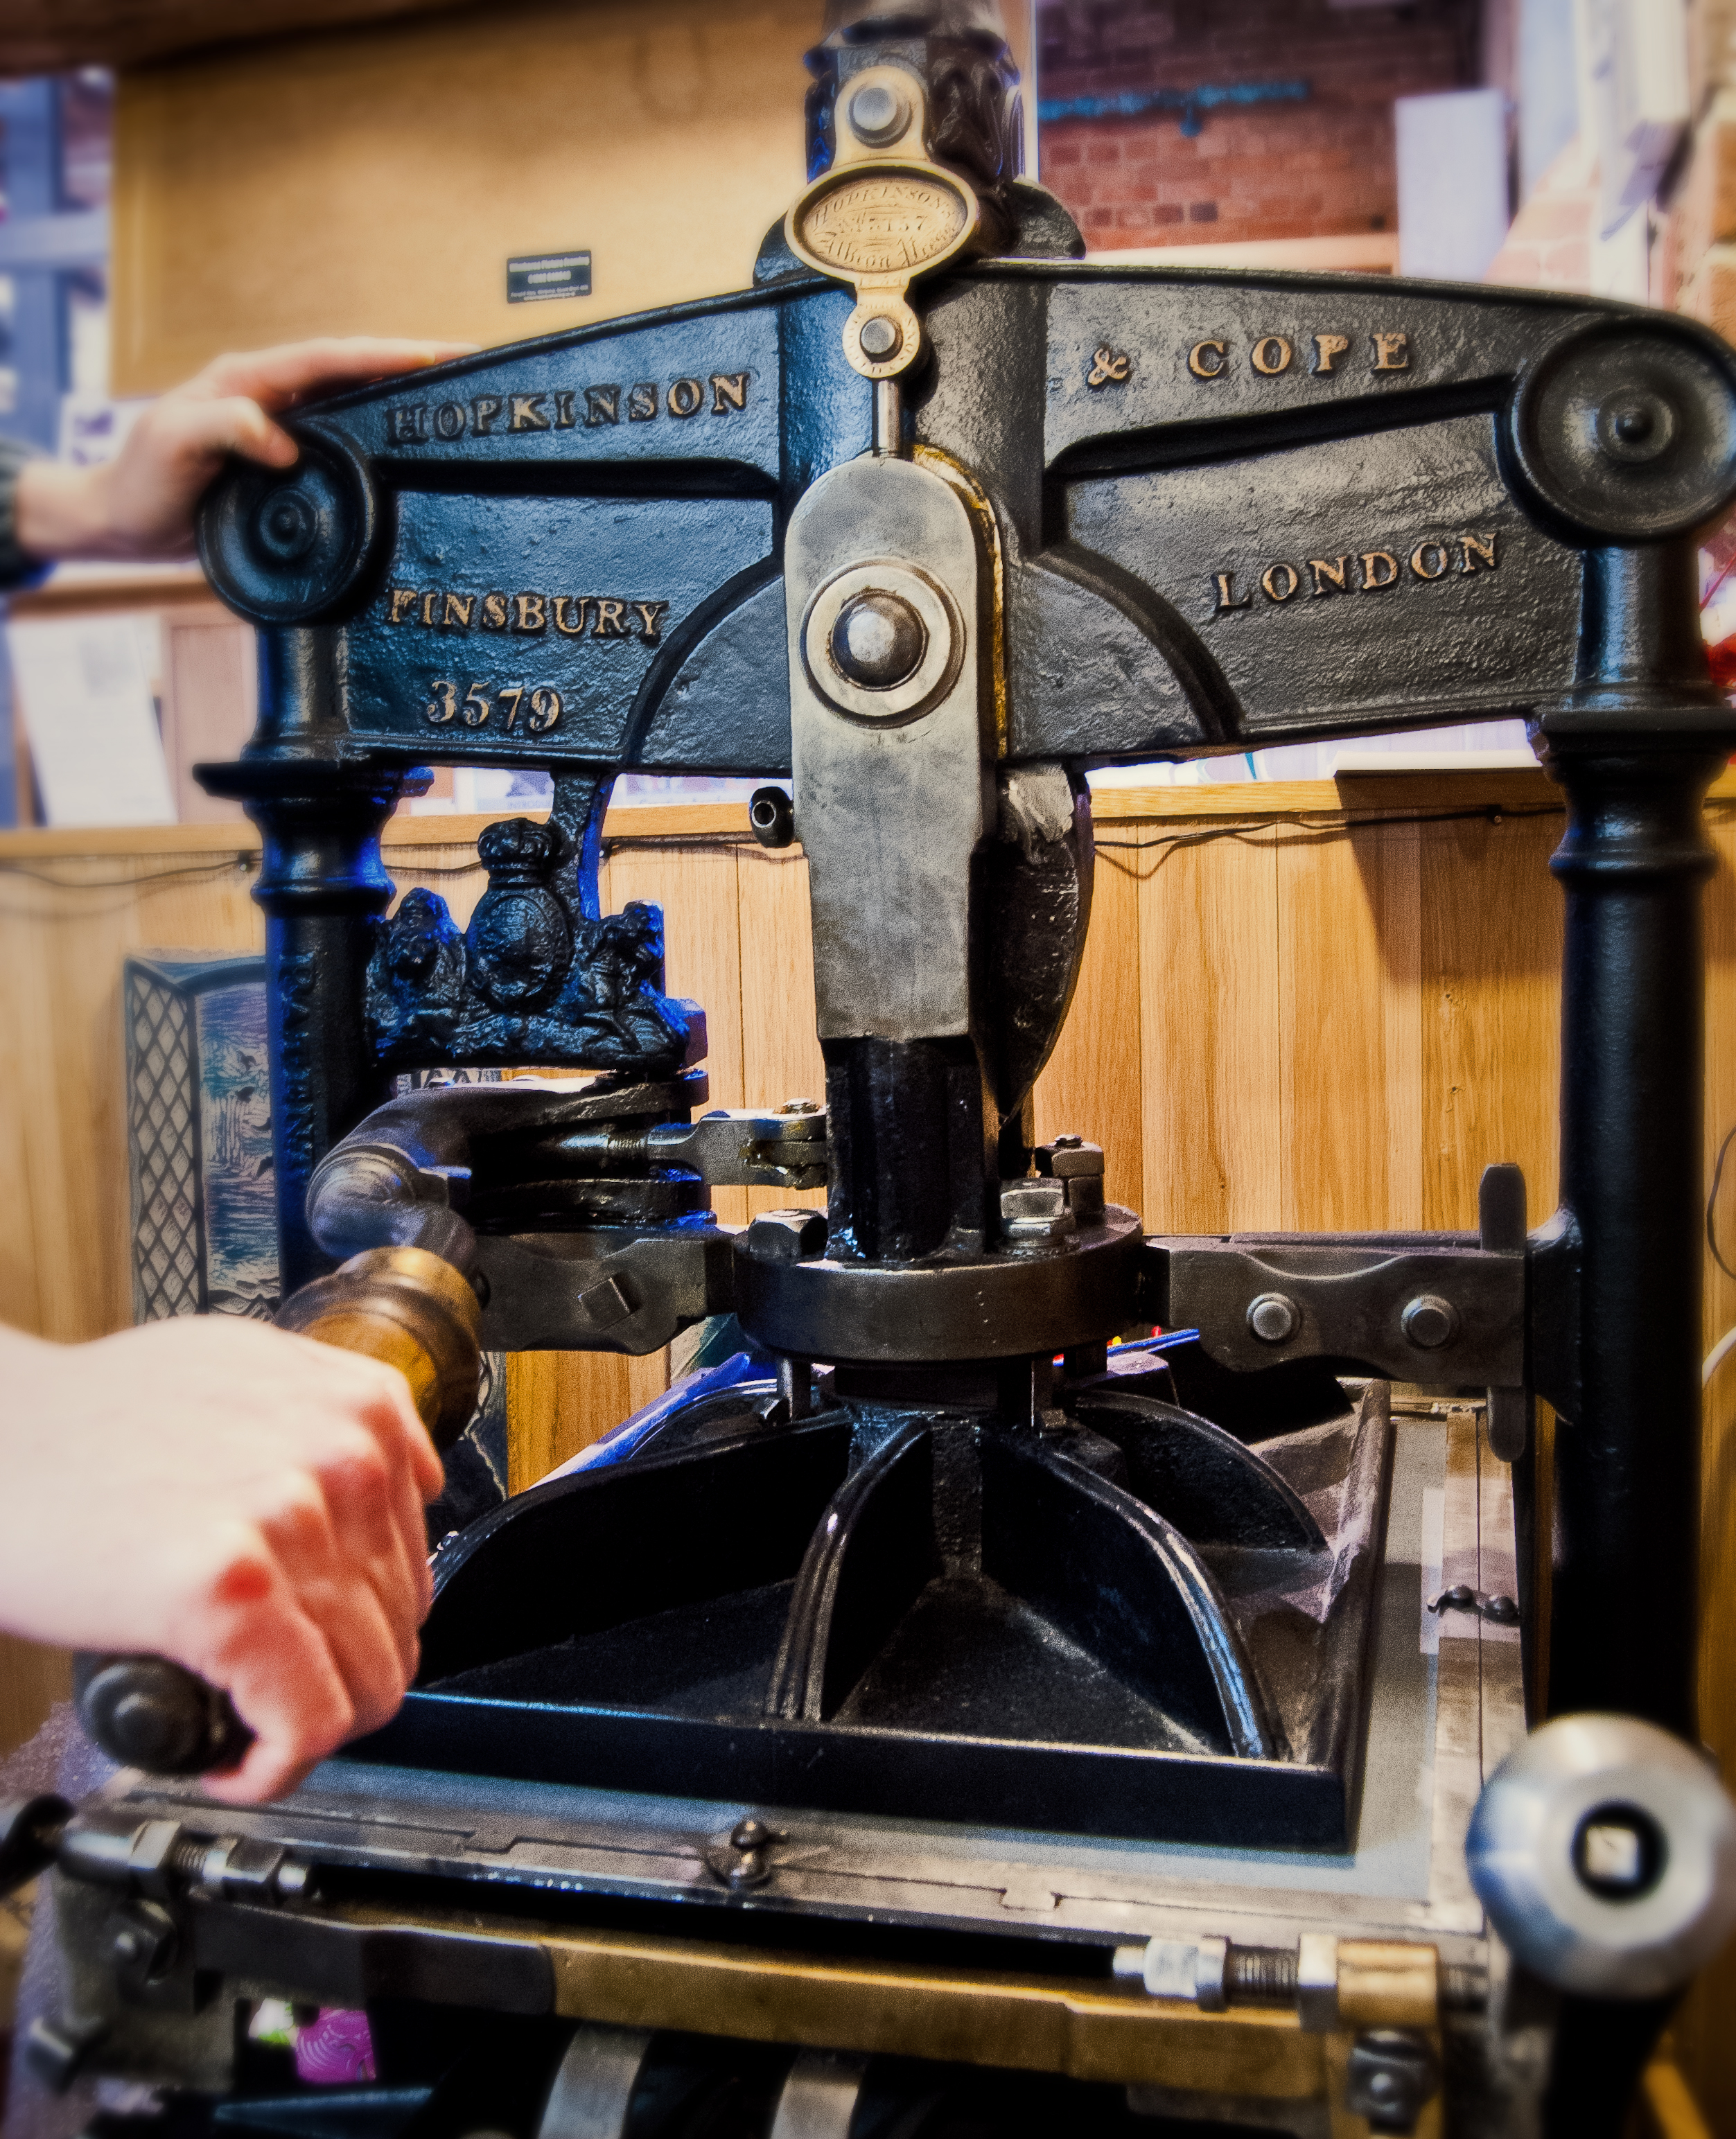 Vintage printing press Robin's uses at his studio